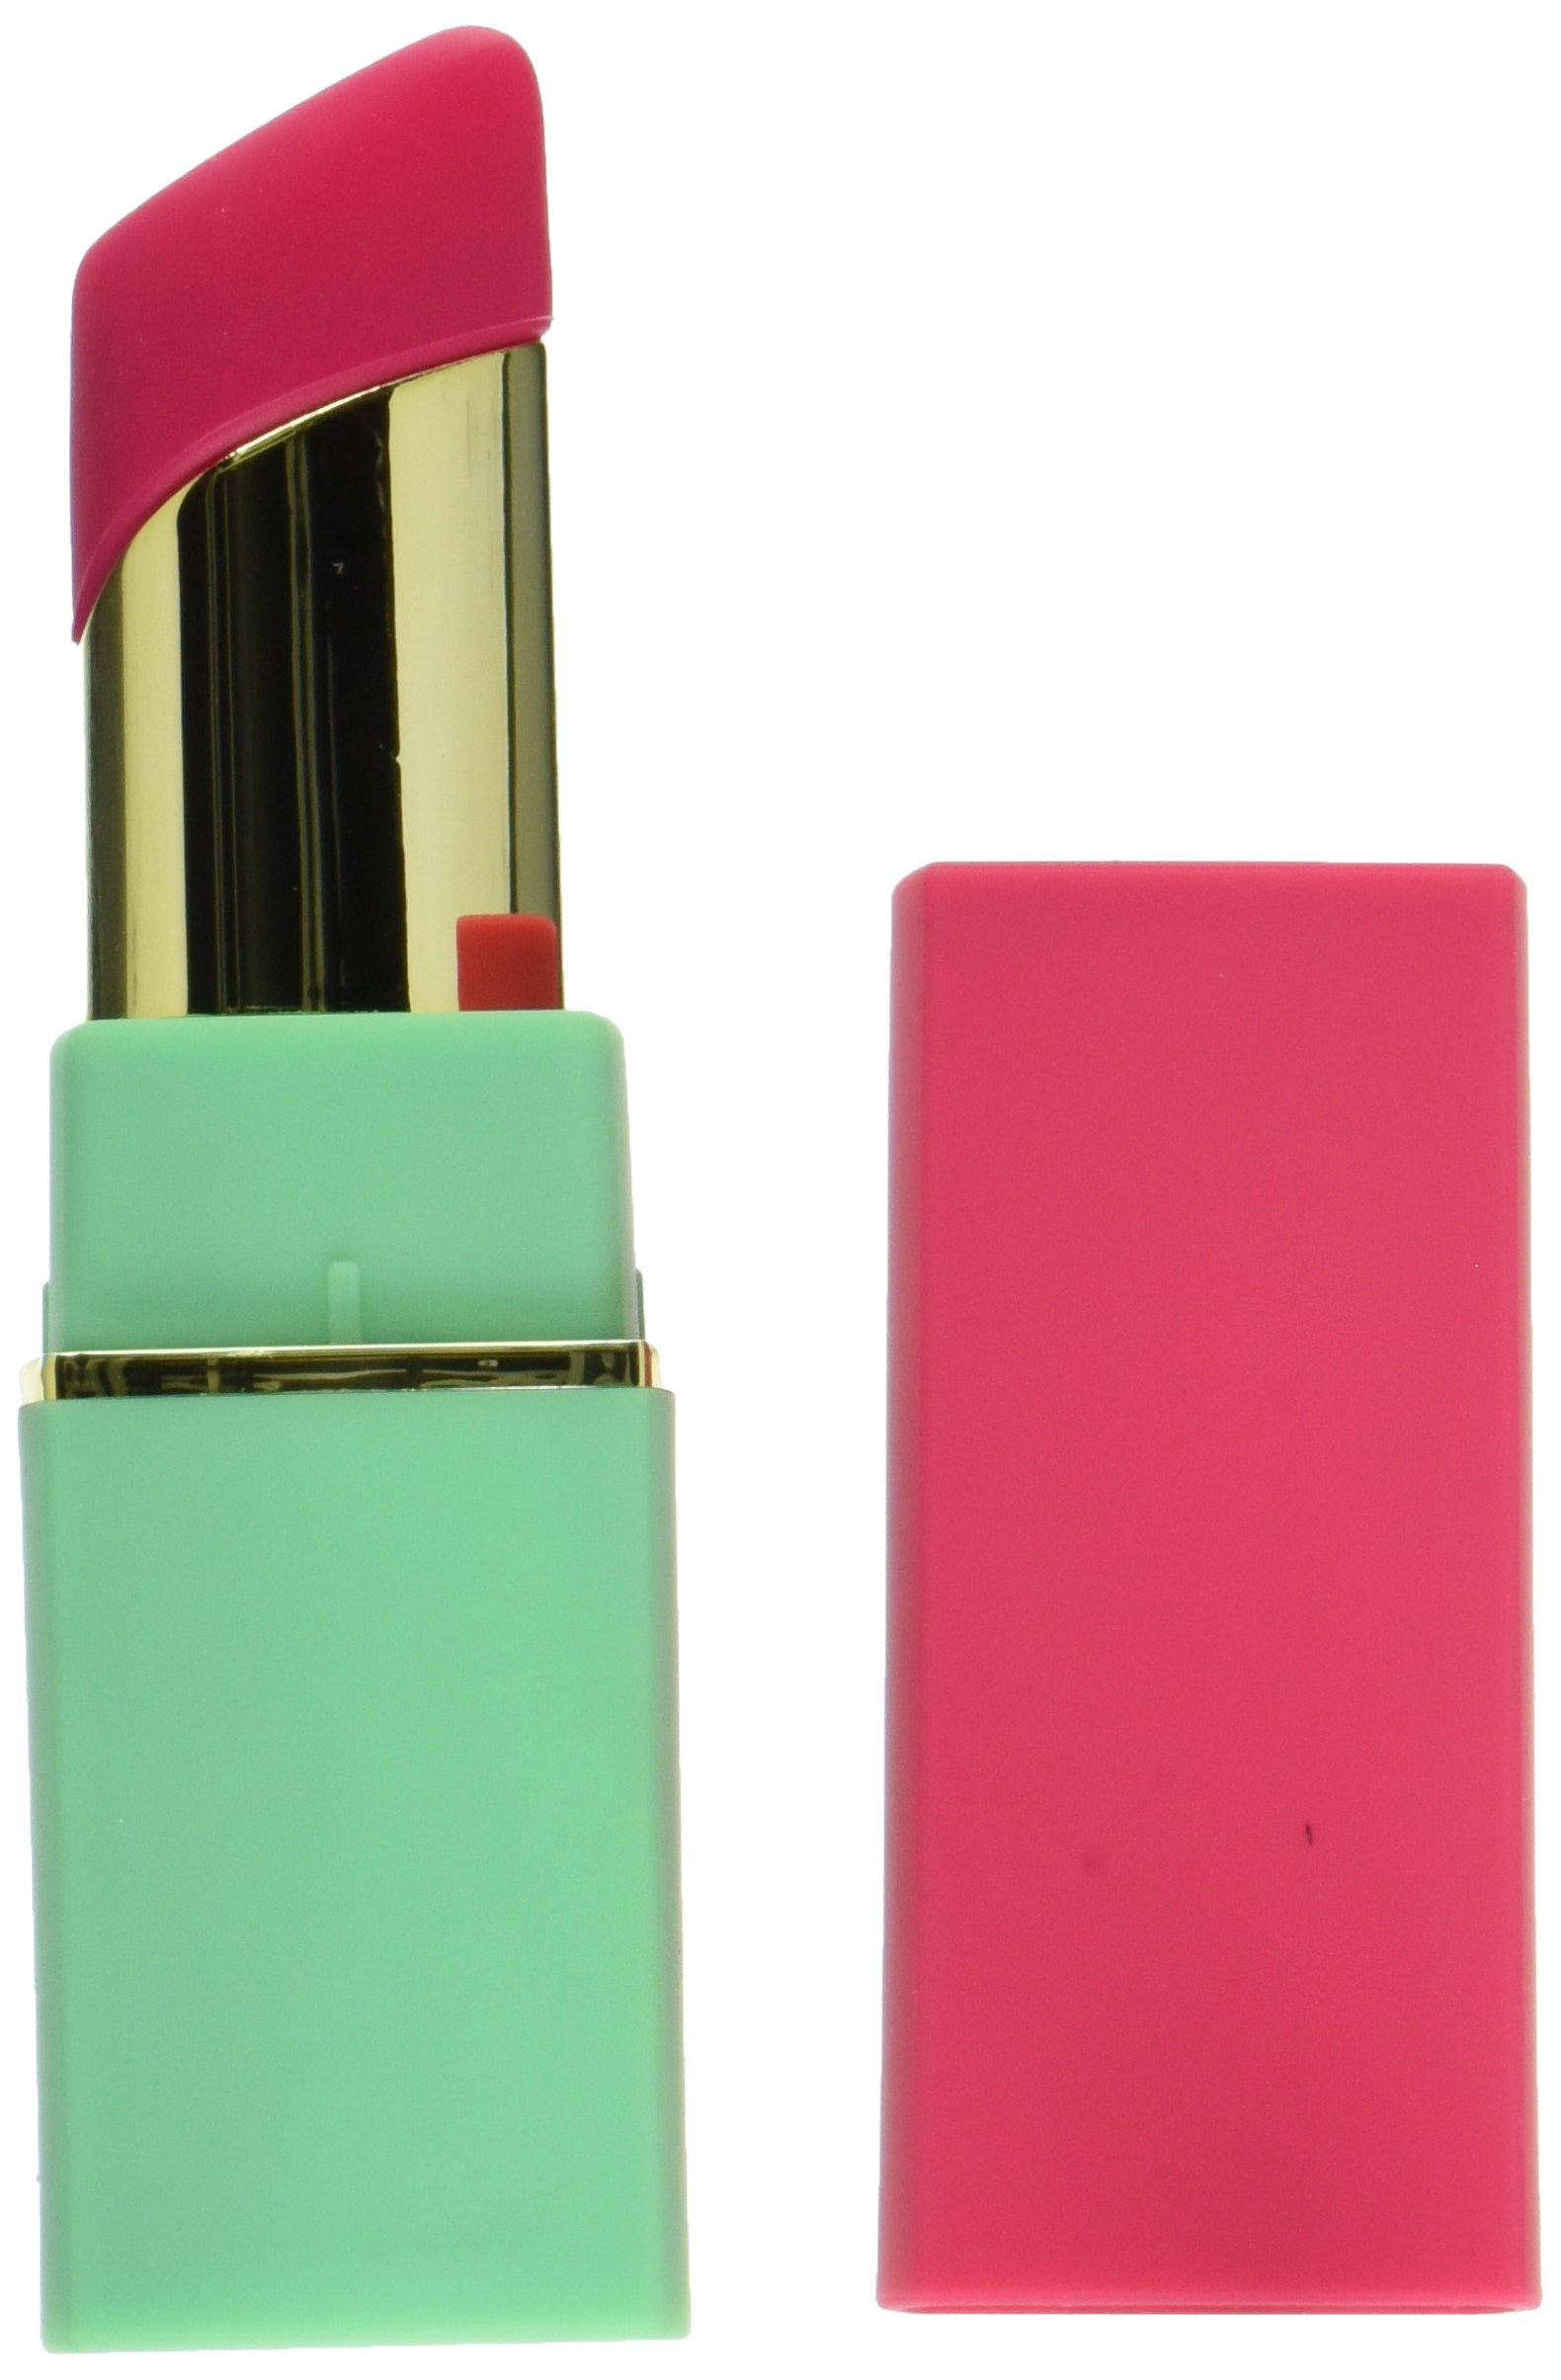 Womanizer 2go Clitoral Stimulator, Watermelon